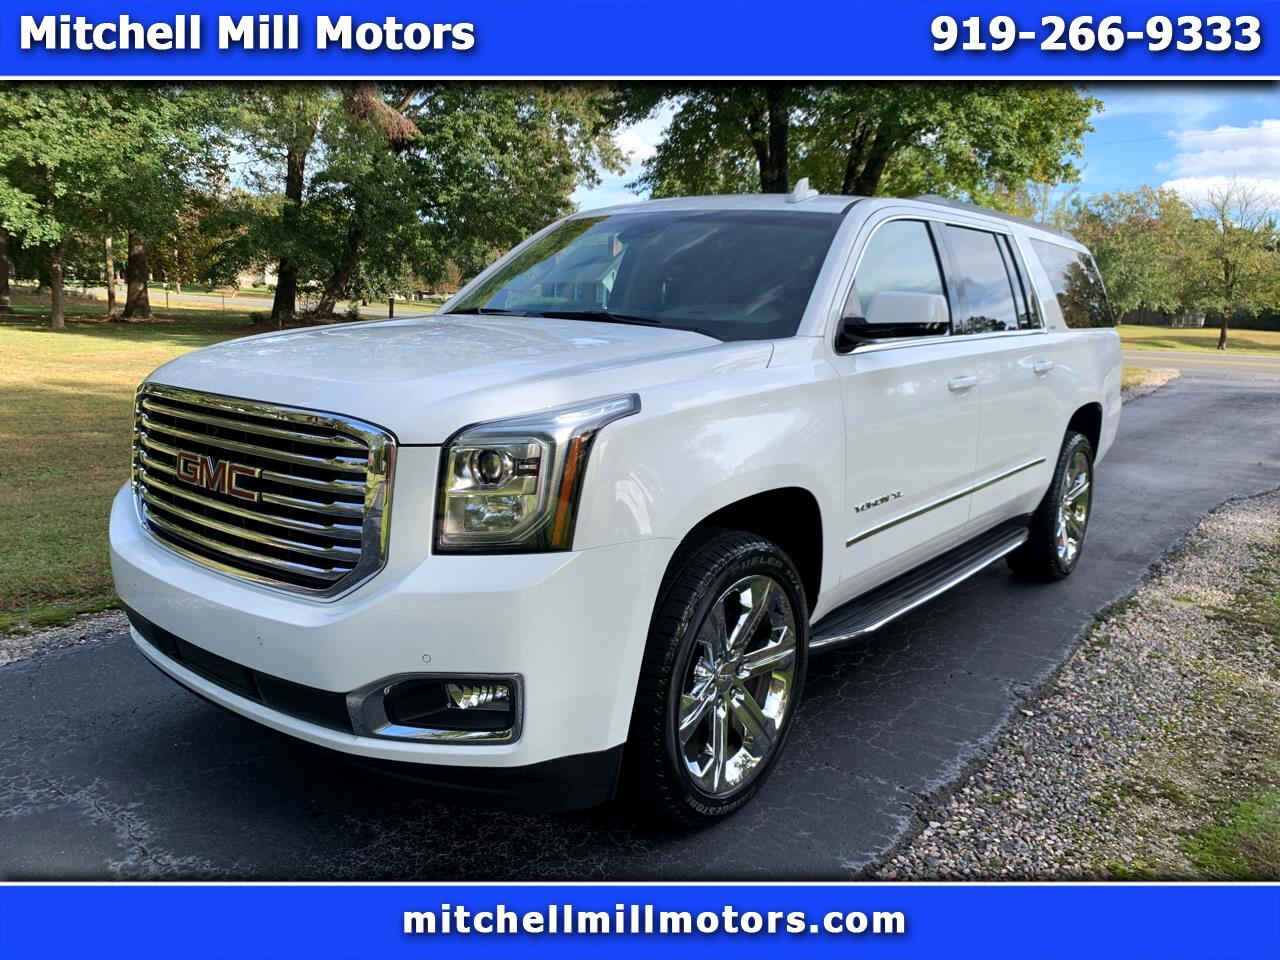 Used 2018 Gmc Yukon Xl 4wd 4dr Slt For Sale In Raleigh Nc 27616 Mitchell Mill Motors